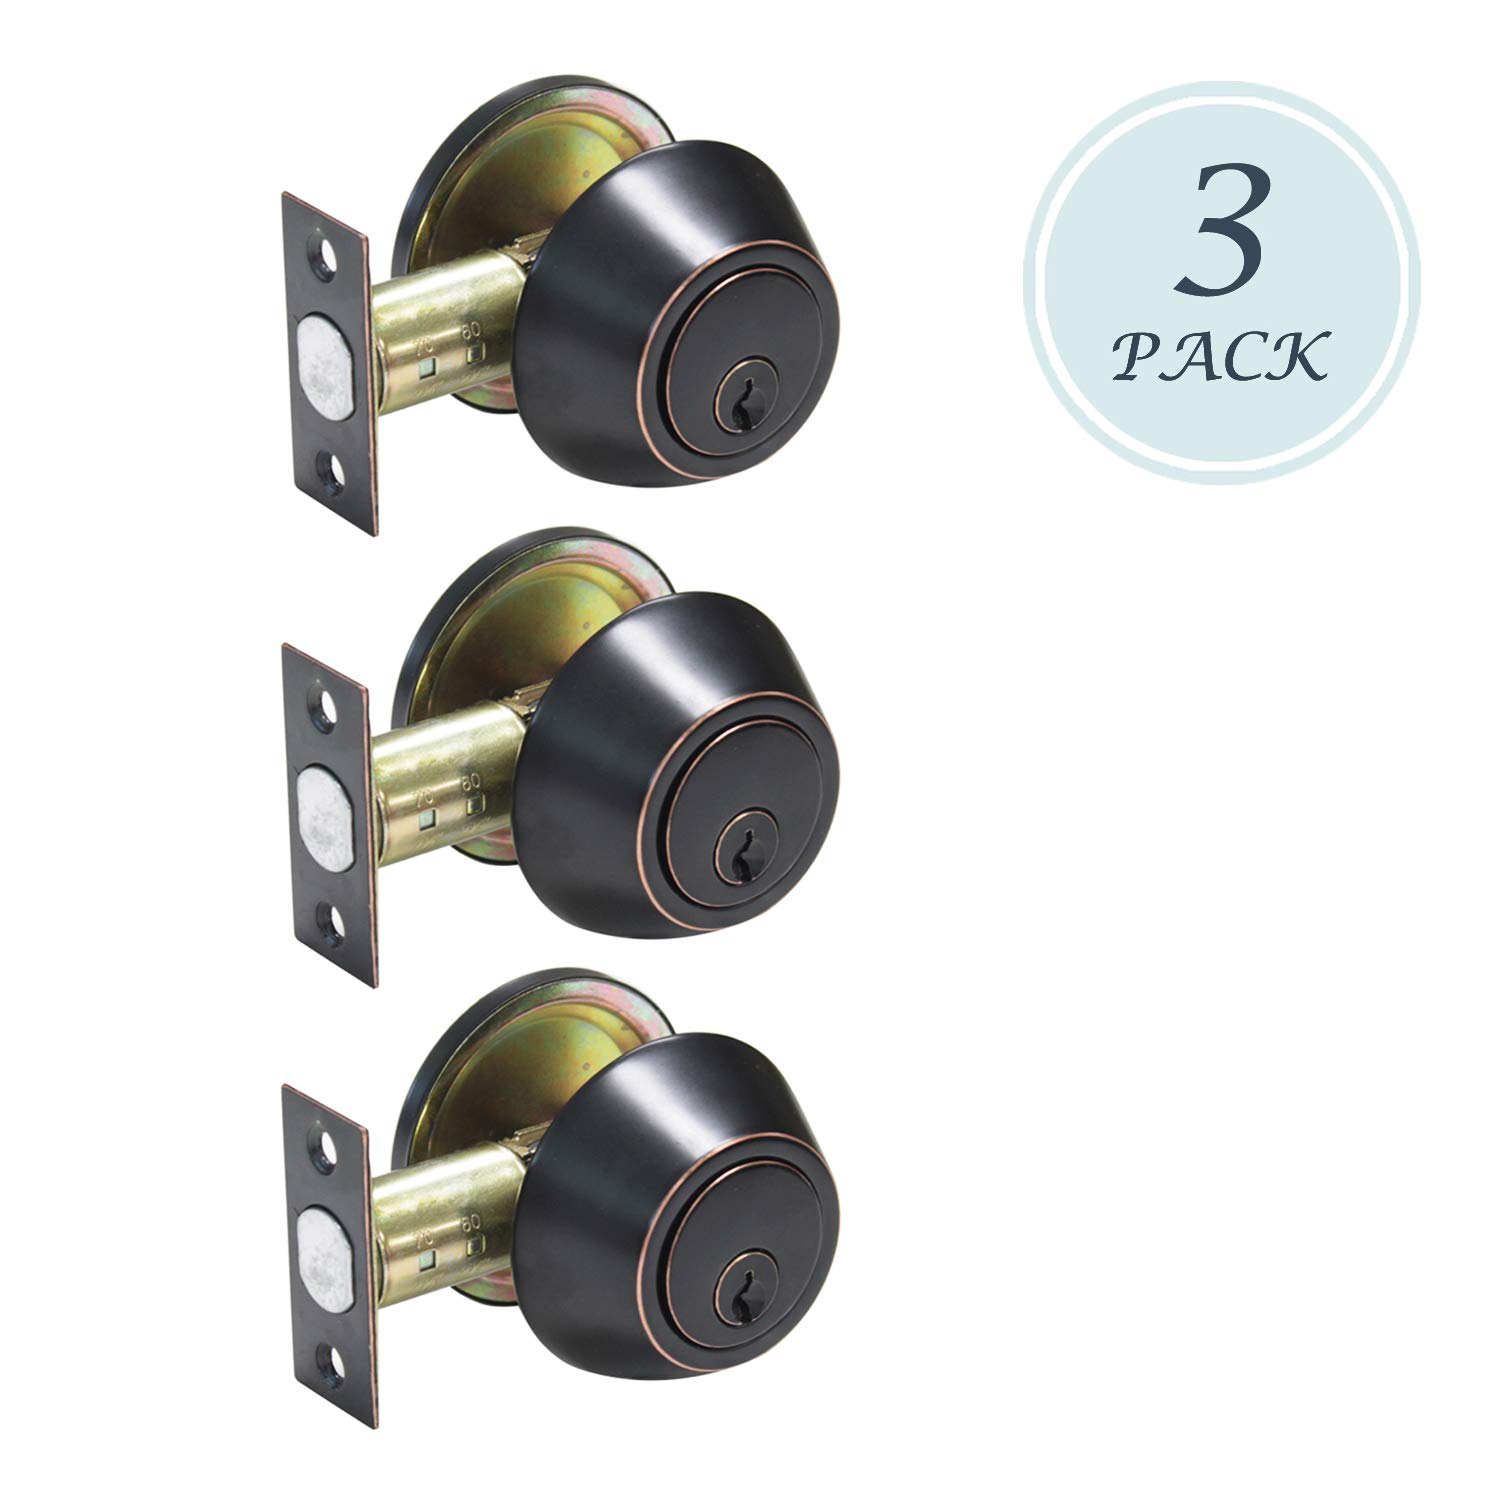 Keyed Alike Oil Rubbed Bronze Single Cylinder Deadbolt For Exterior Doors/Keyed Entry Doors, Thumb Turn Button Inside And Key Outside, 3 Pack